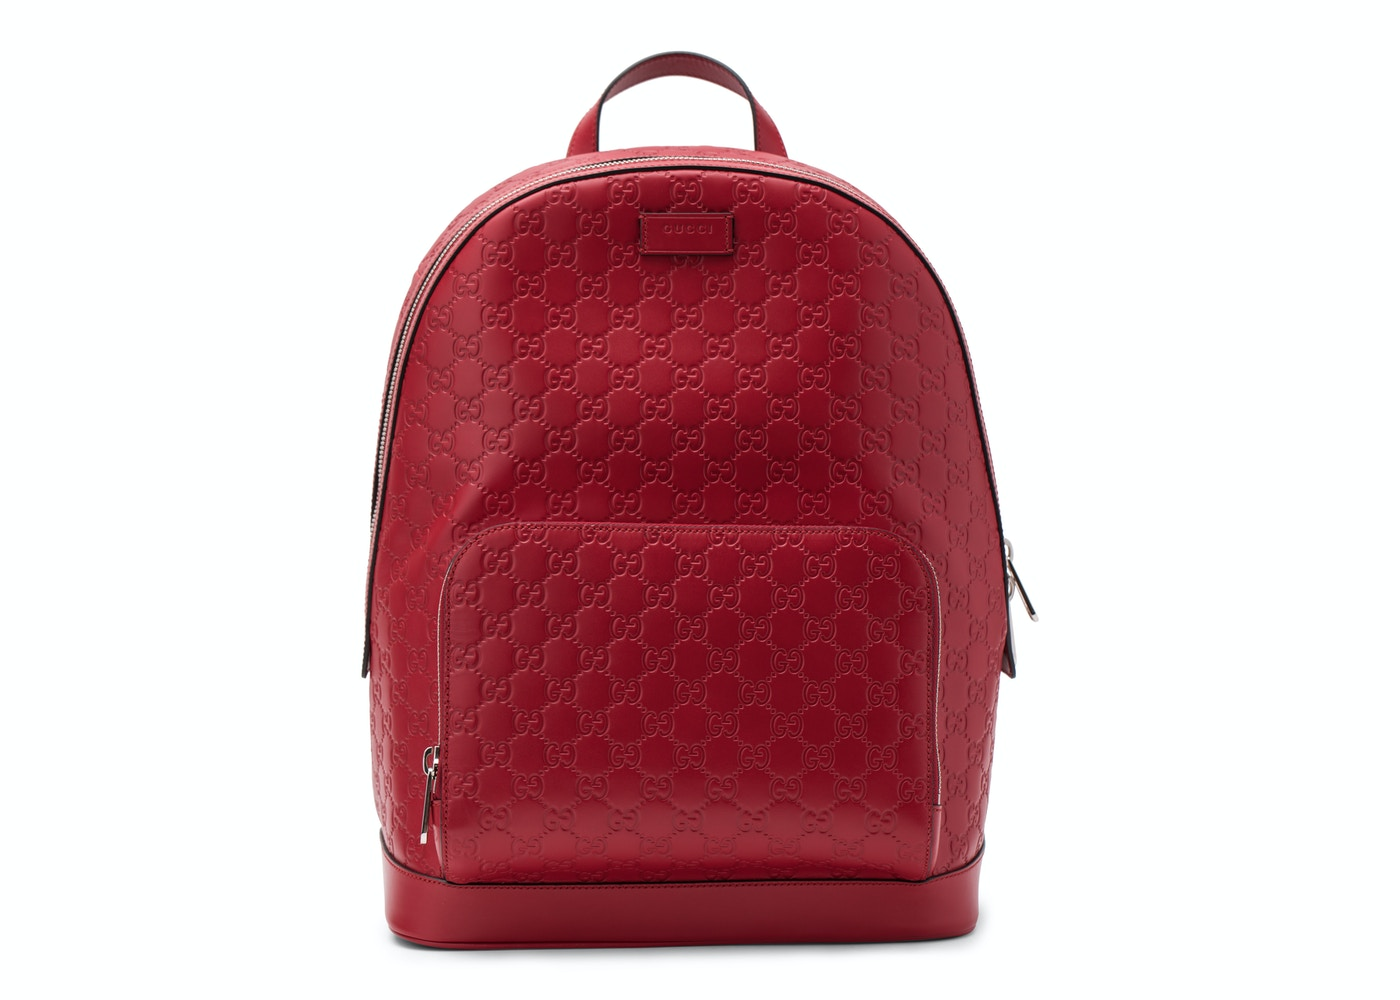 a172631f785f Gucci Signature Backpack Monogram GG Front Zipper Pocket Embossed Hibiscus  Red. Monogram GG Front Zipper Pocket Embossed Hibiscus Red